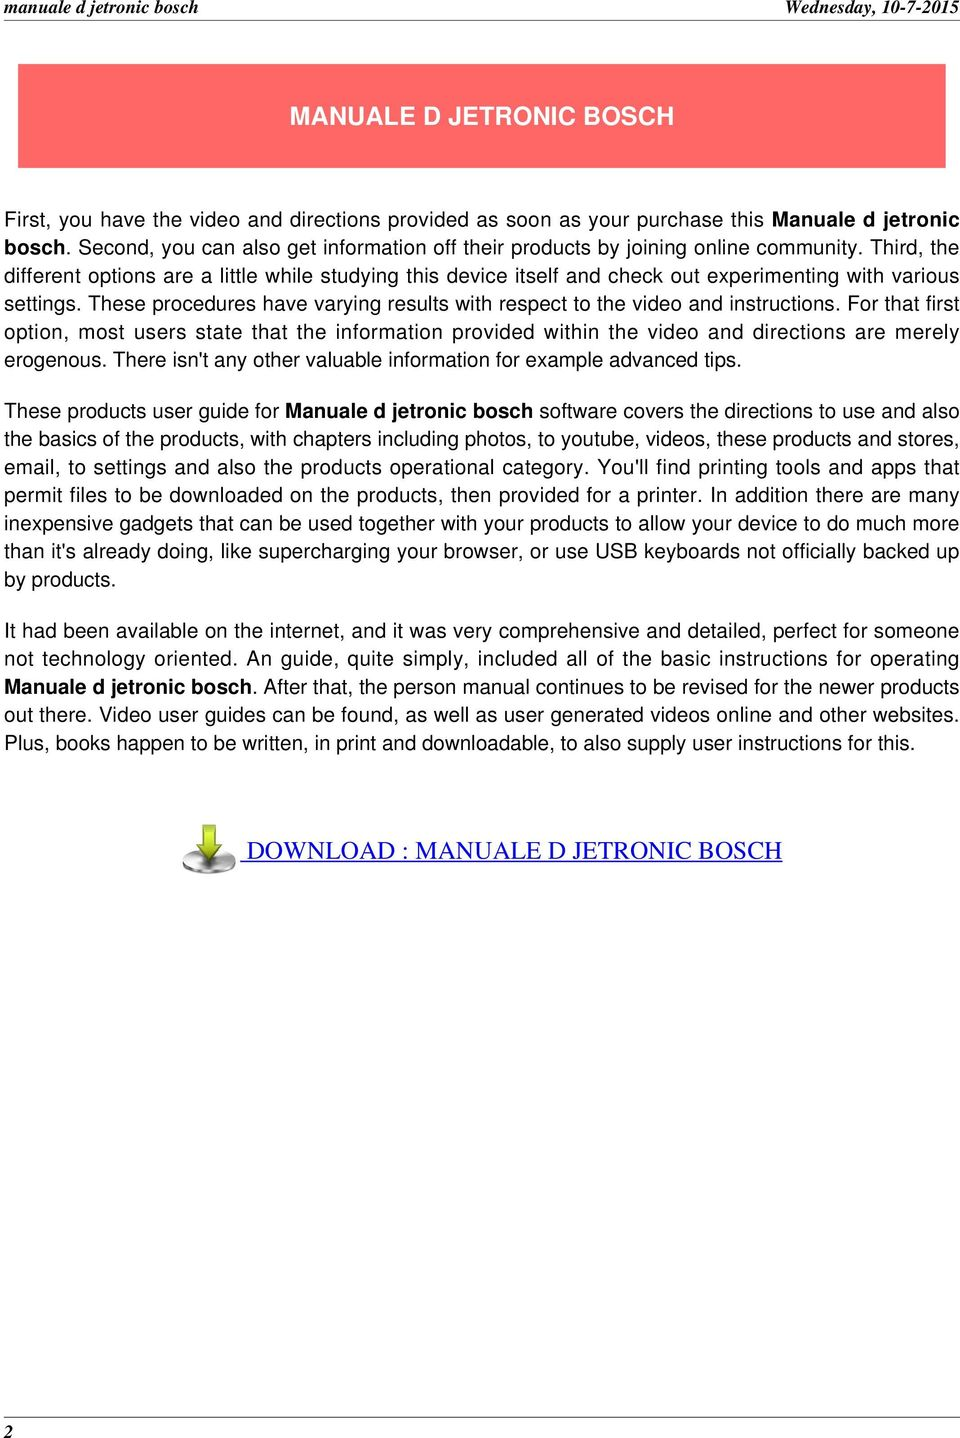 DOWNLOAD : MANUALE D JETRONIC BOSCH 2. Third, the different options are a  little while studying this device itself and check out